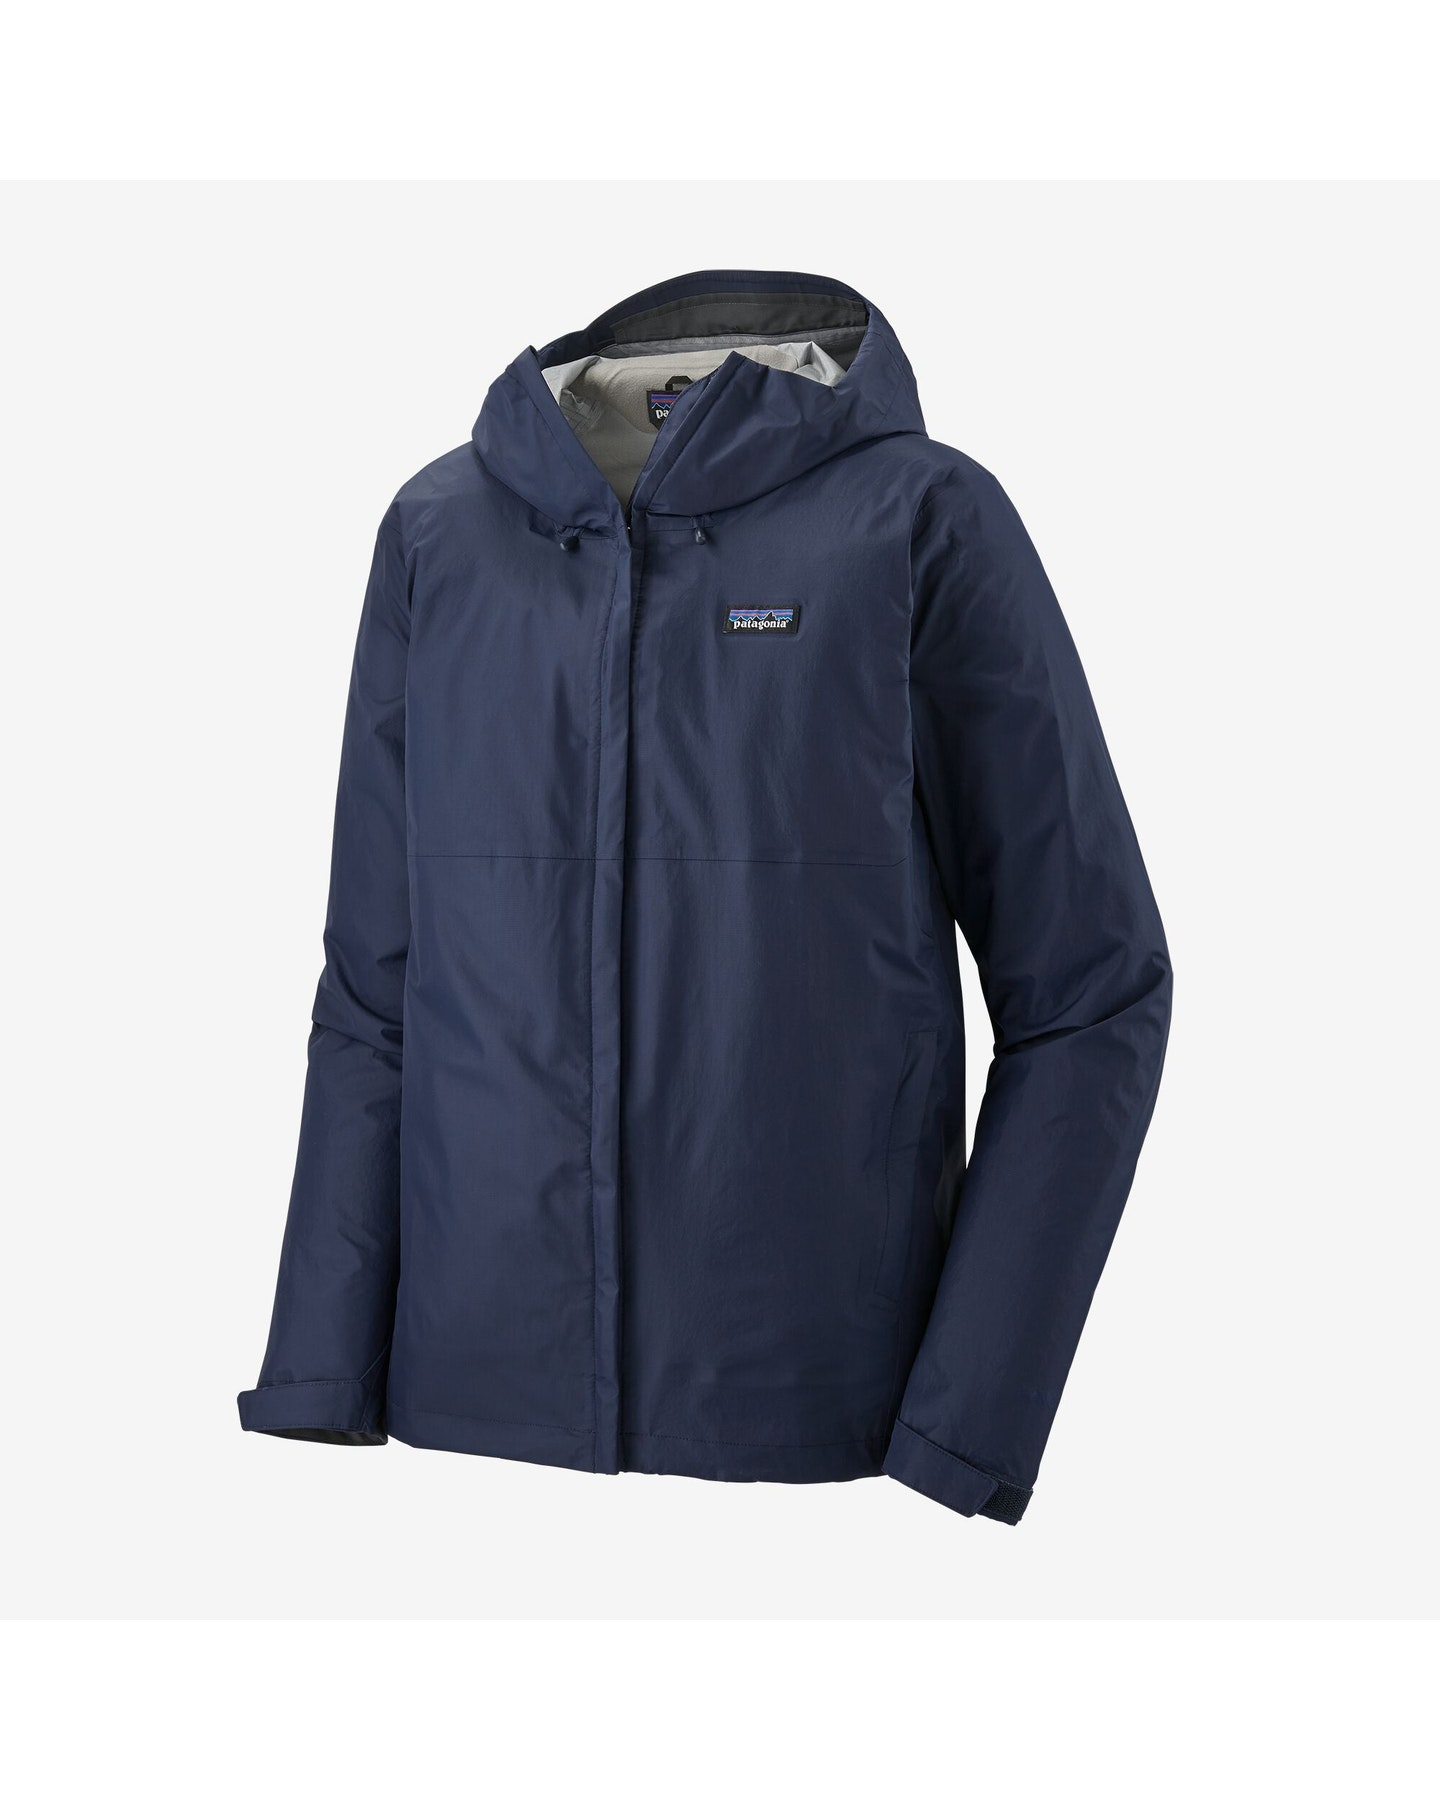 Patagonia Torrentshell 3L Mens Jacket Classic Navy Classic Navy